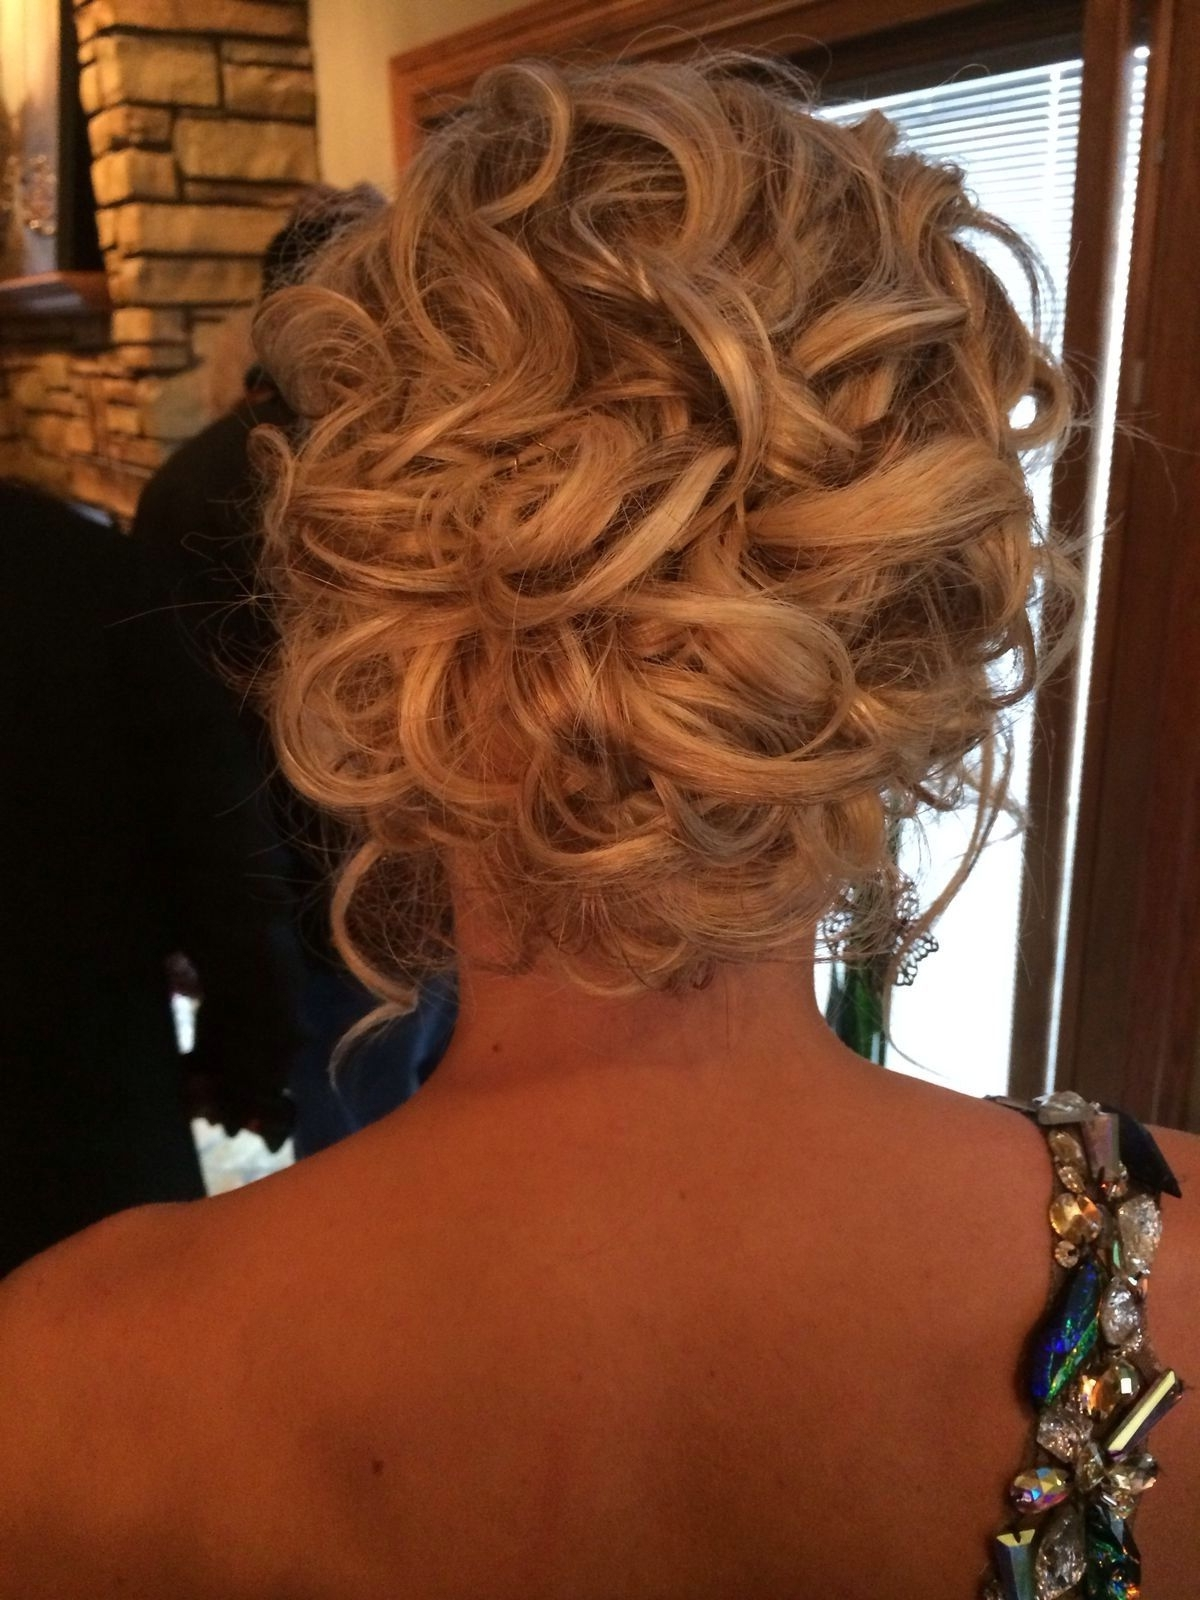 Prom Hair Updo | Hair | Pinterest | Prom Hair Updo, Prom Hair And Updo Intended For Loose Updos For Curly Hair (View 13 of 15)